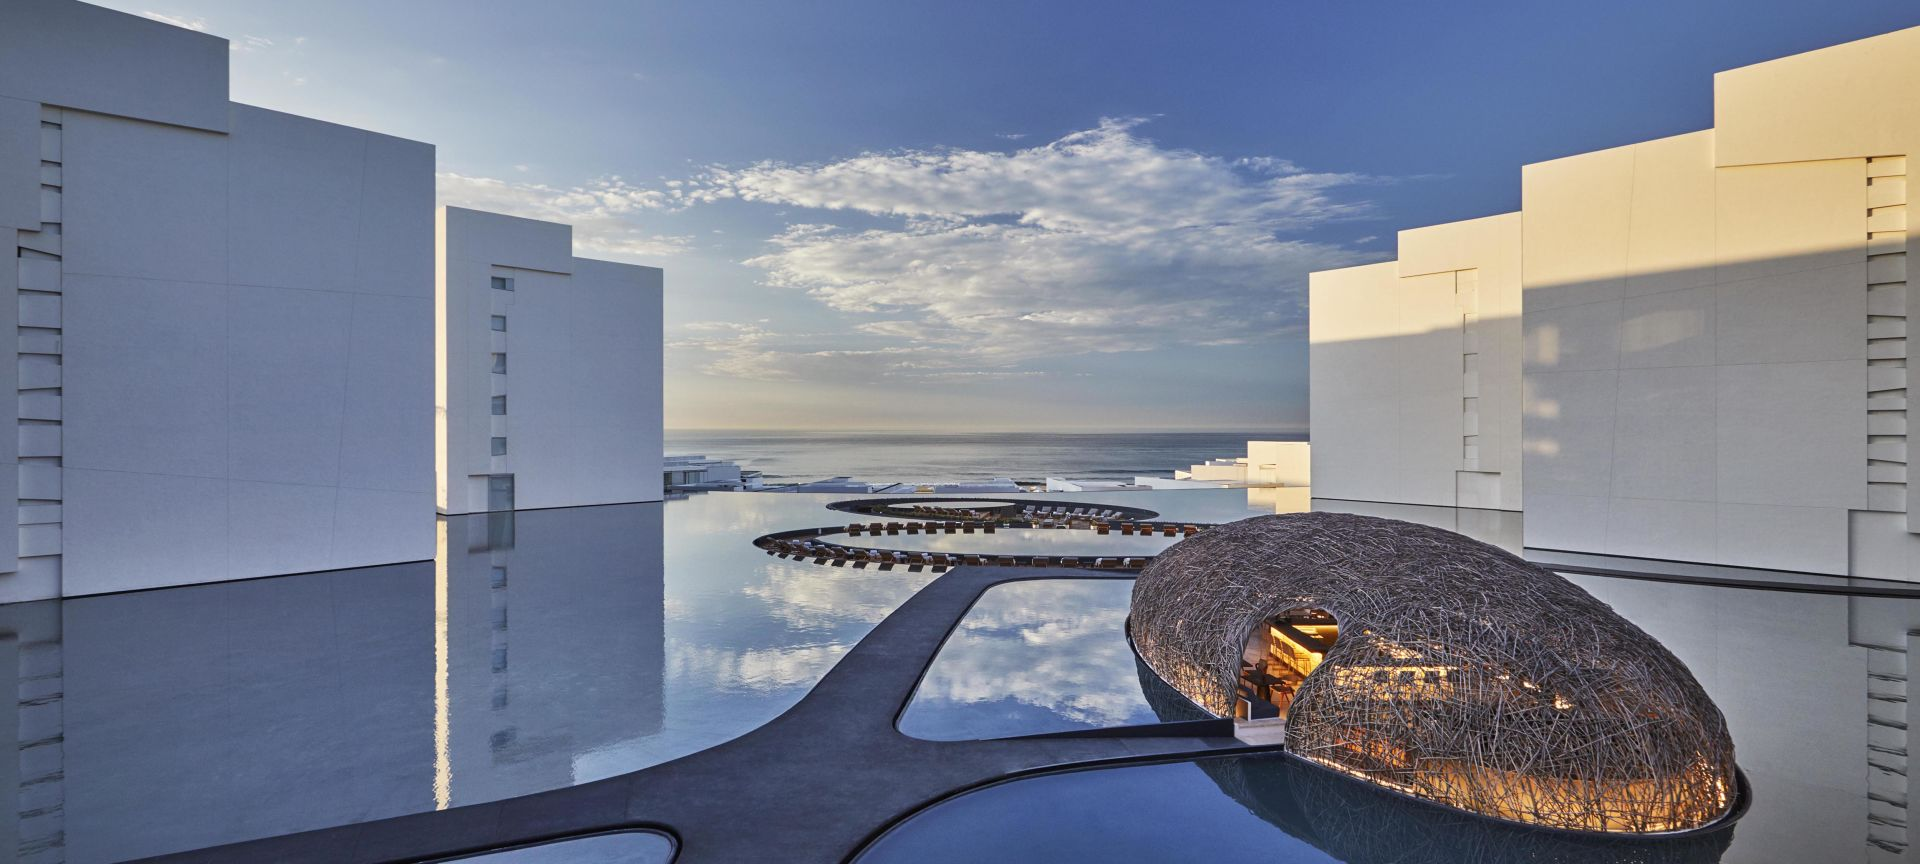 Unique courtyard at Viceroy Los Cabos